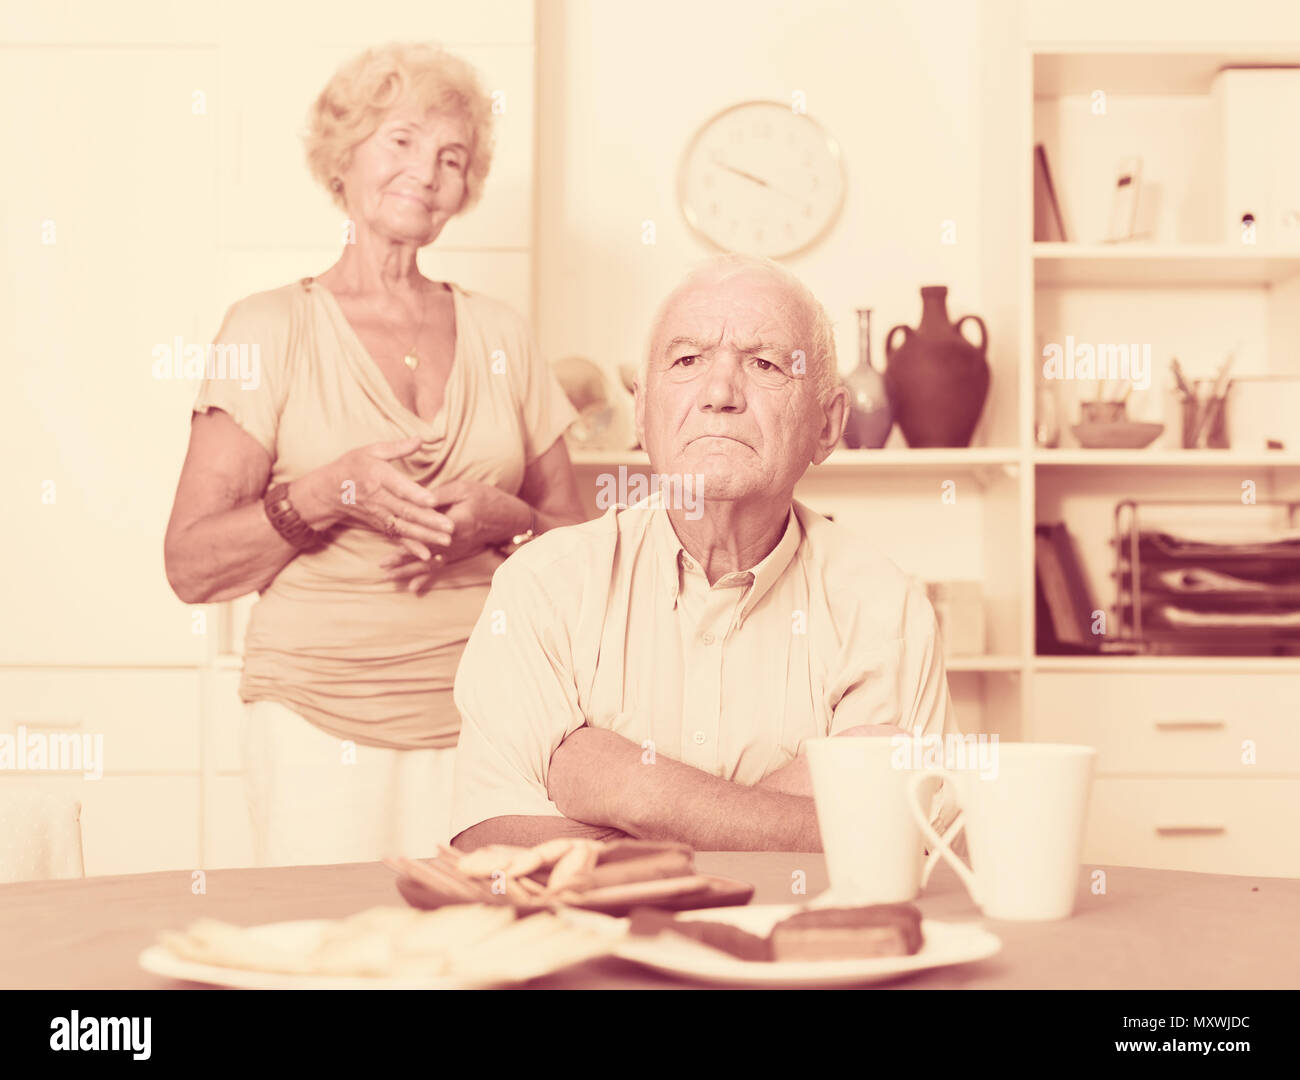 Upset mature man dont speaking after discord with woman standing behind - Stock Image